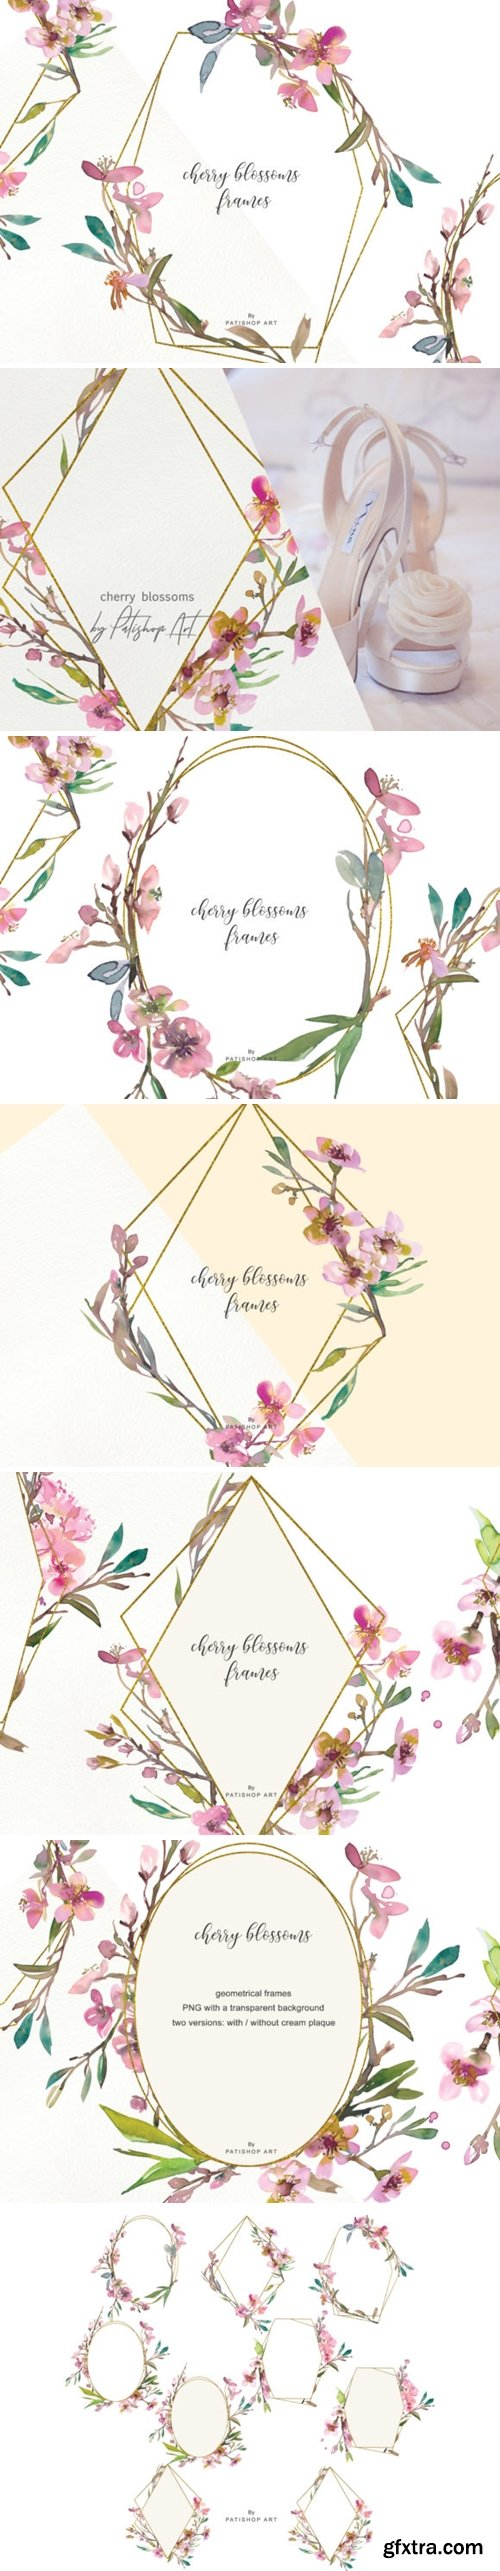 Watercolor Cherry Blossoms Frames 1585475